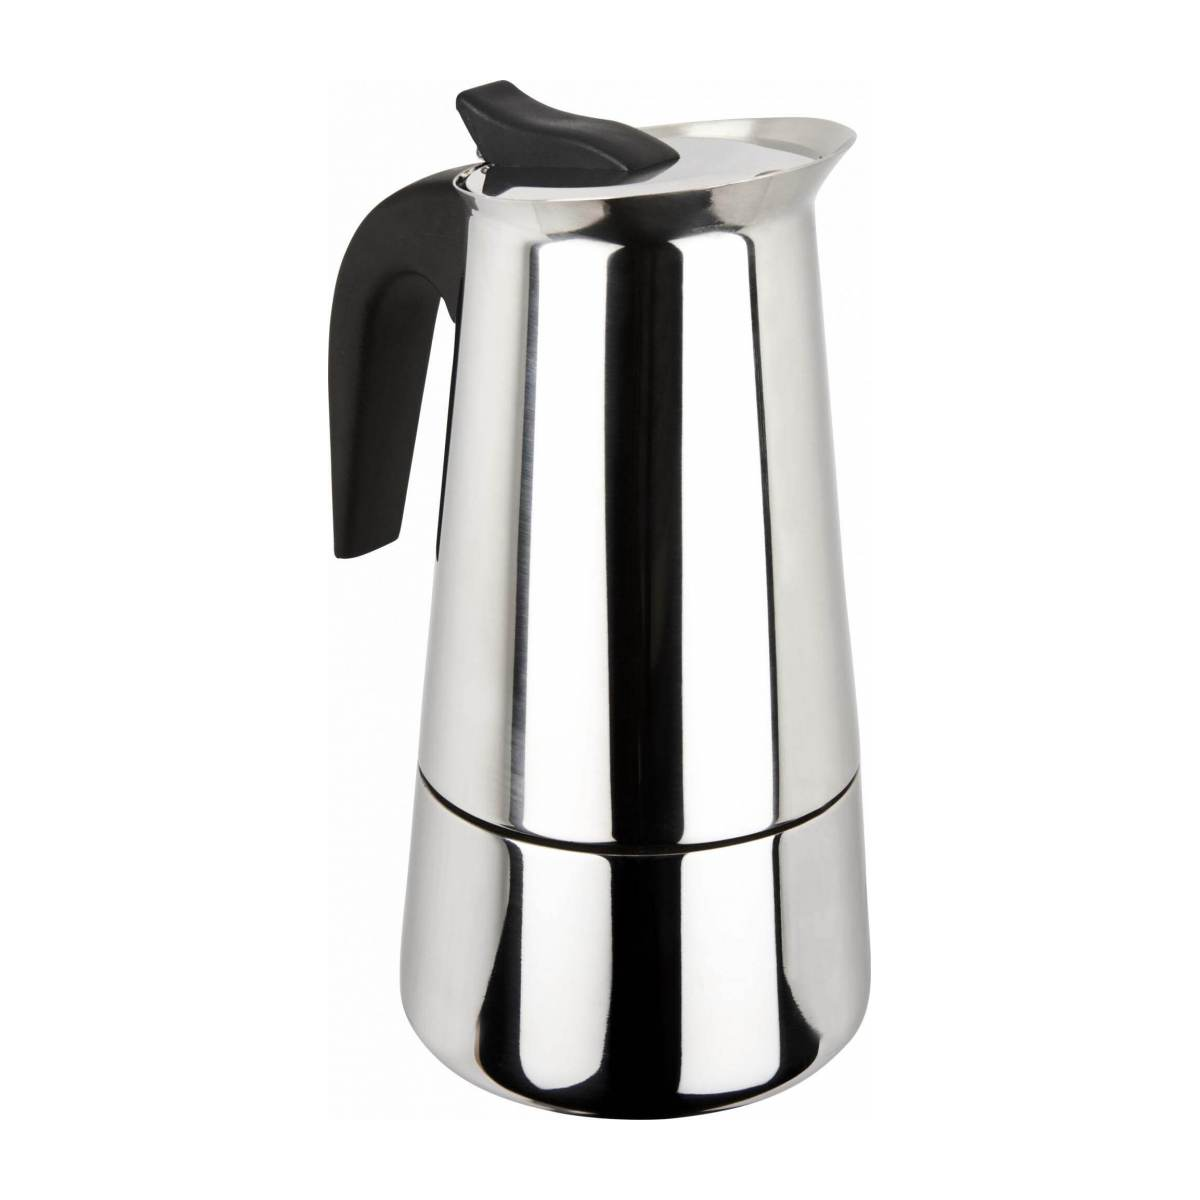 Stainless steel coffee maker n°1